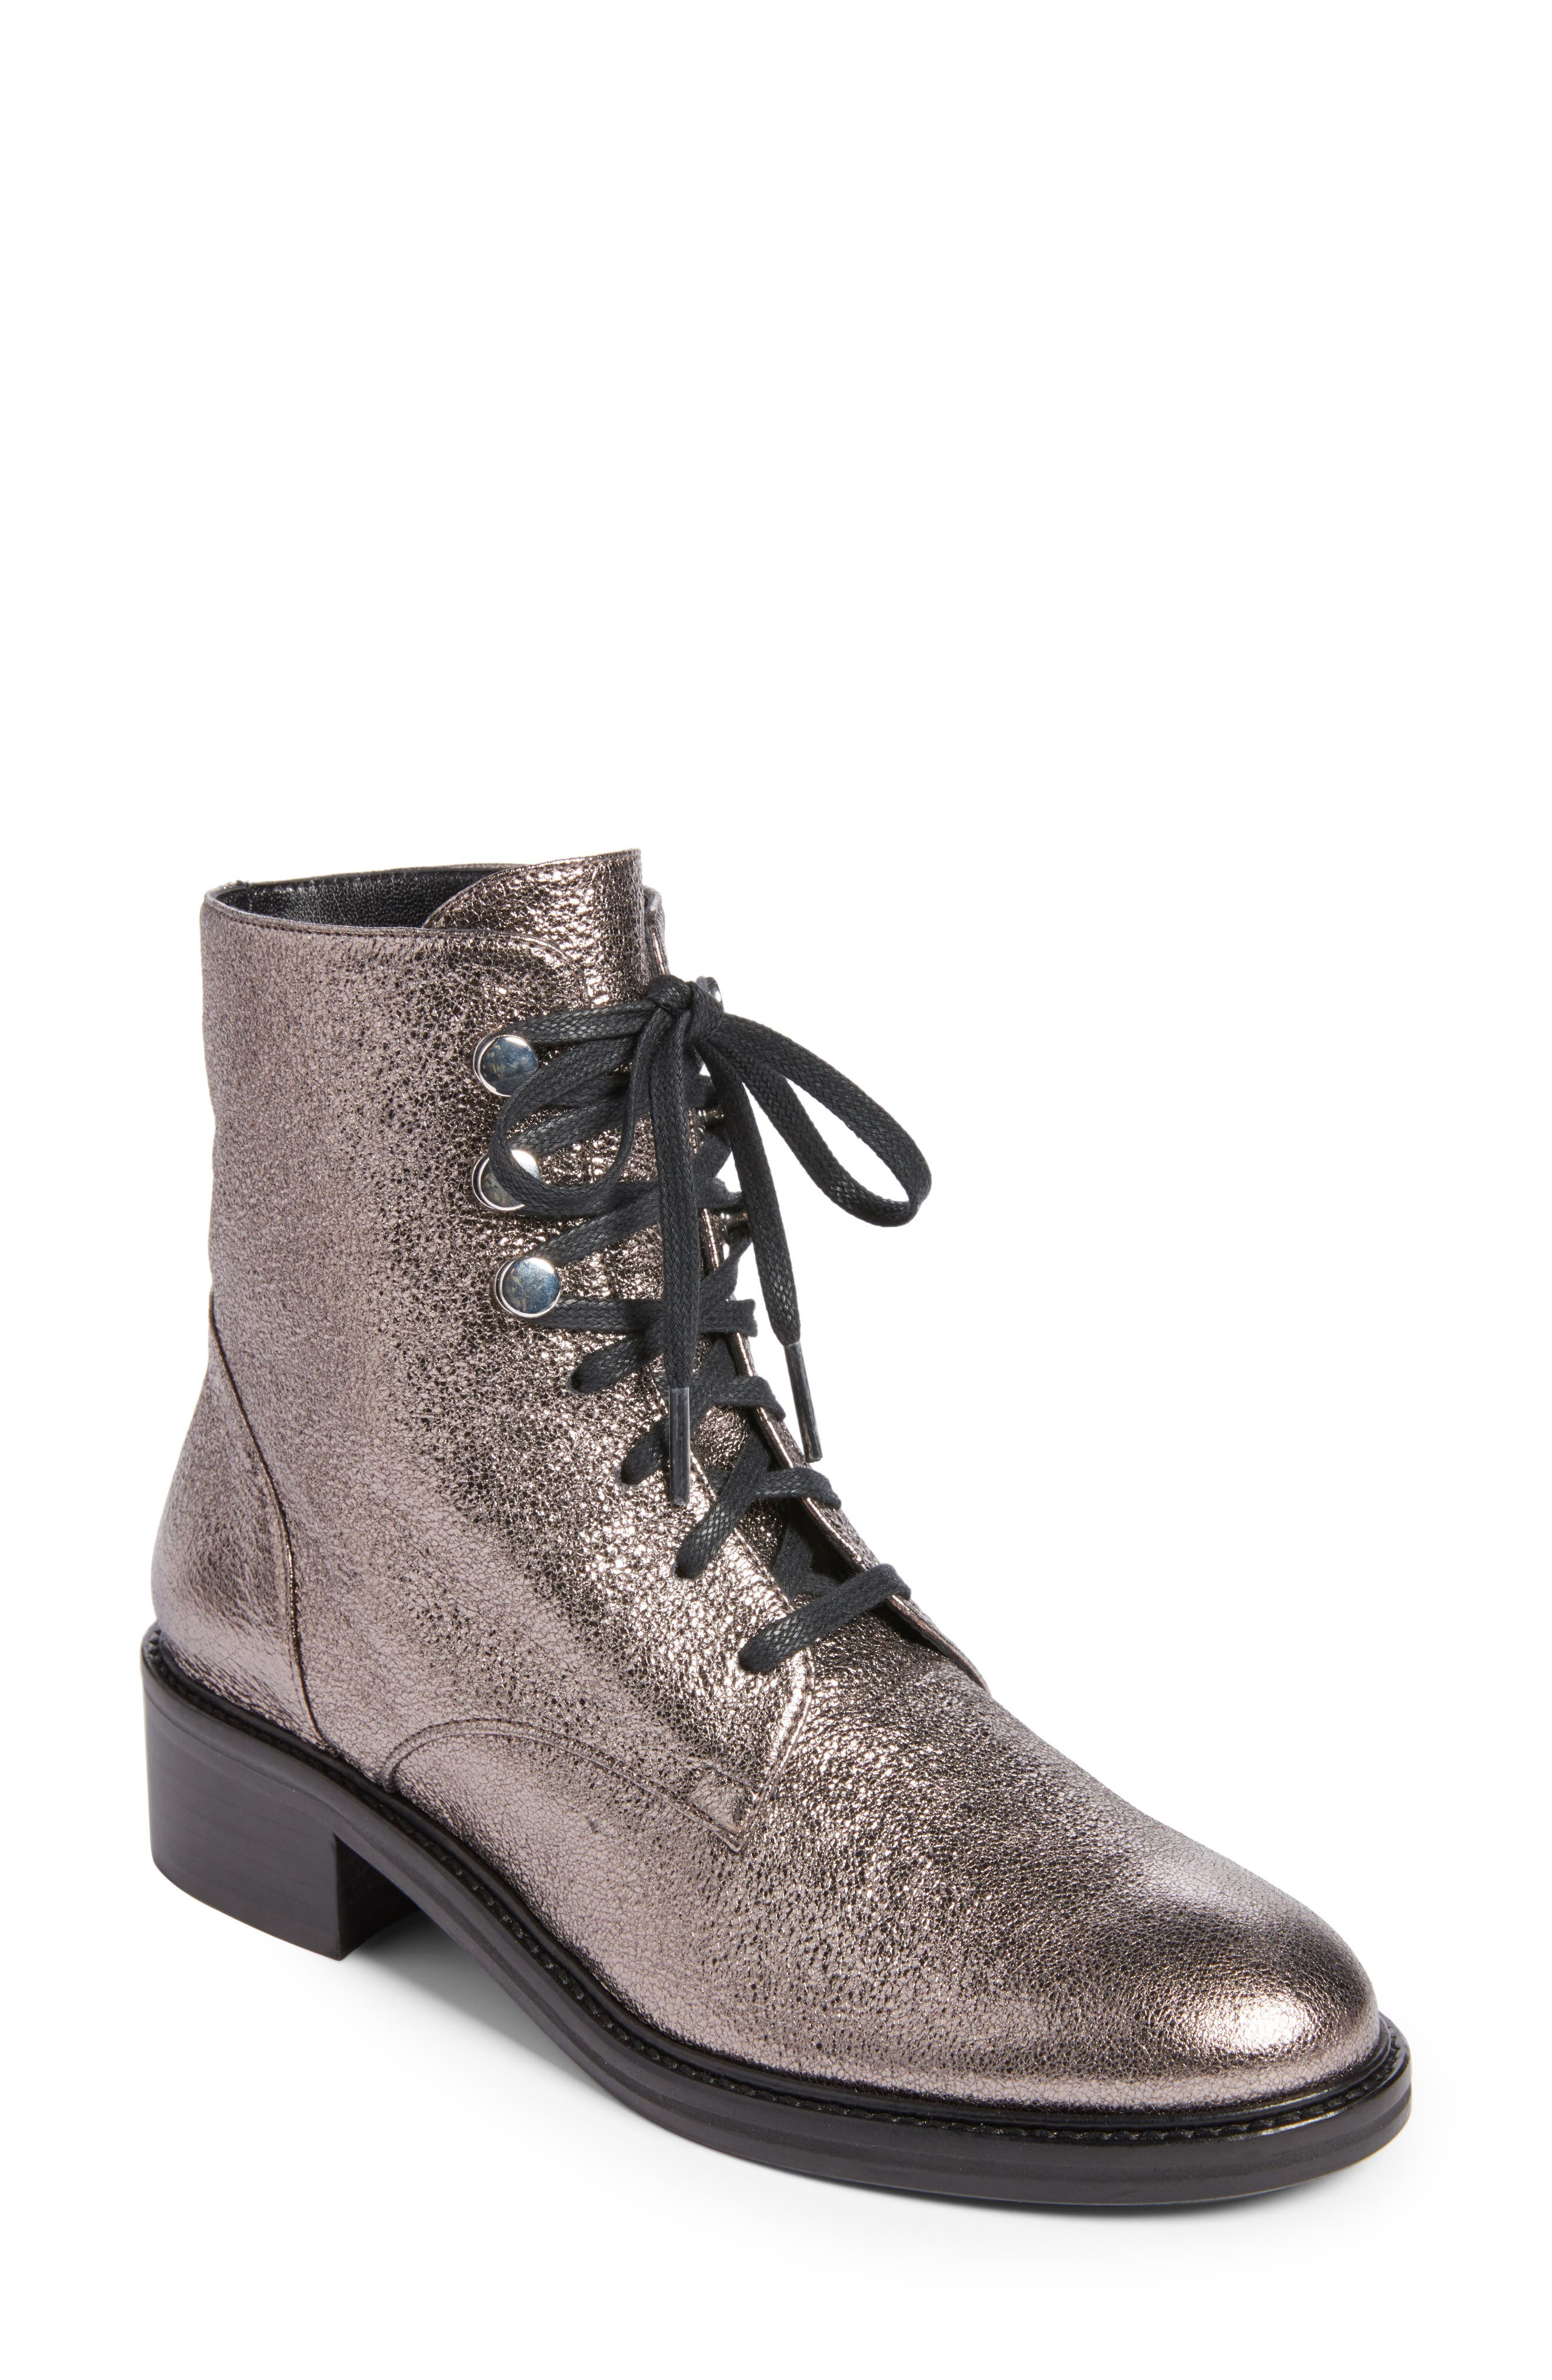 Alternate Image 1 Selected - Lewit Lucca Boot (Women)